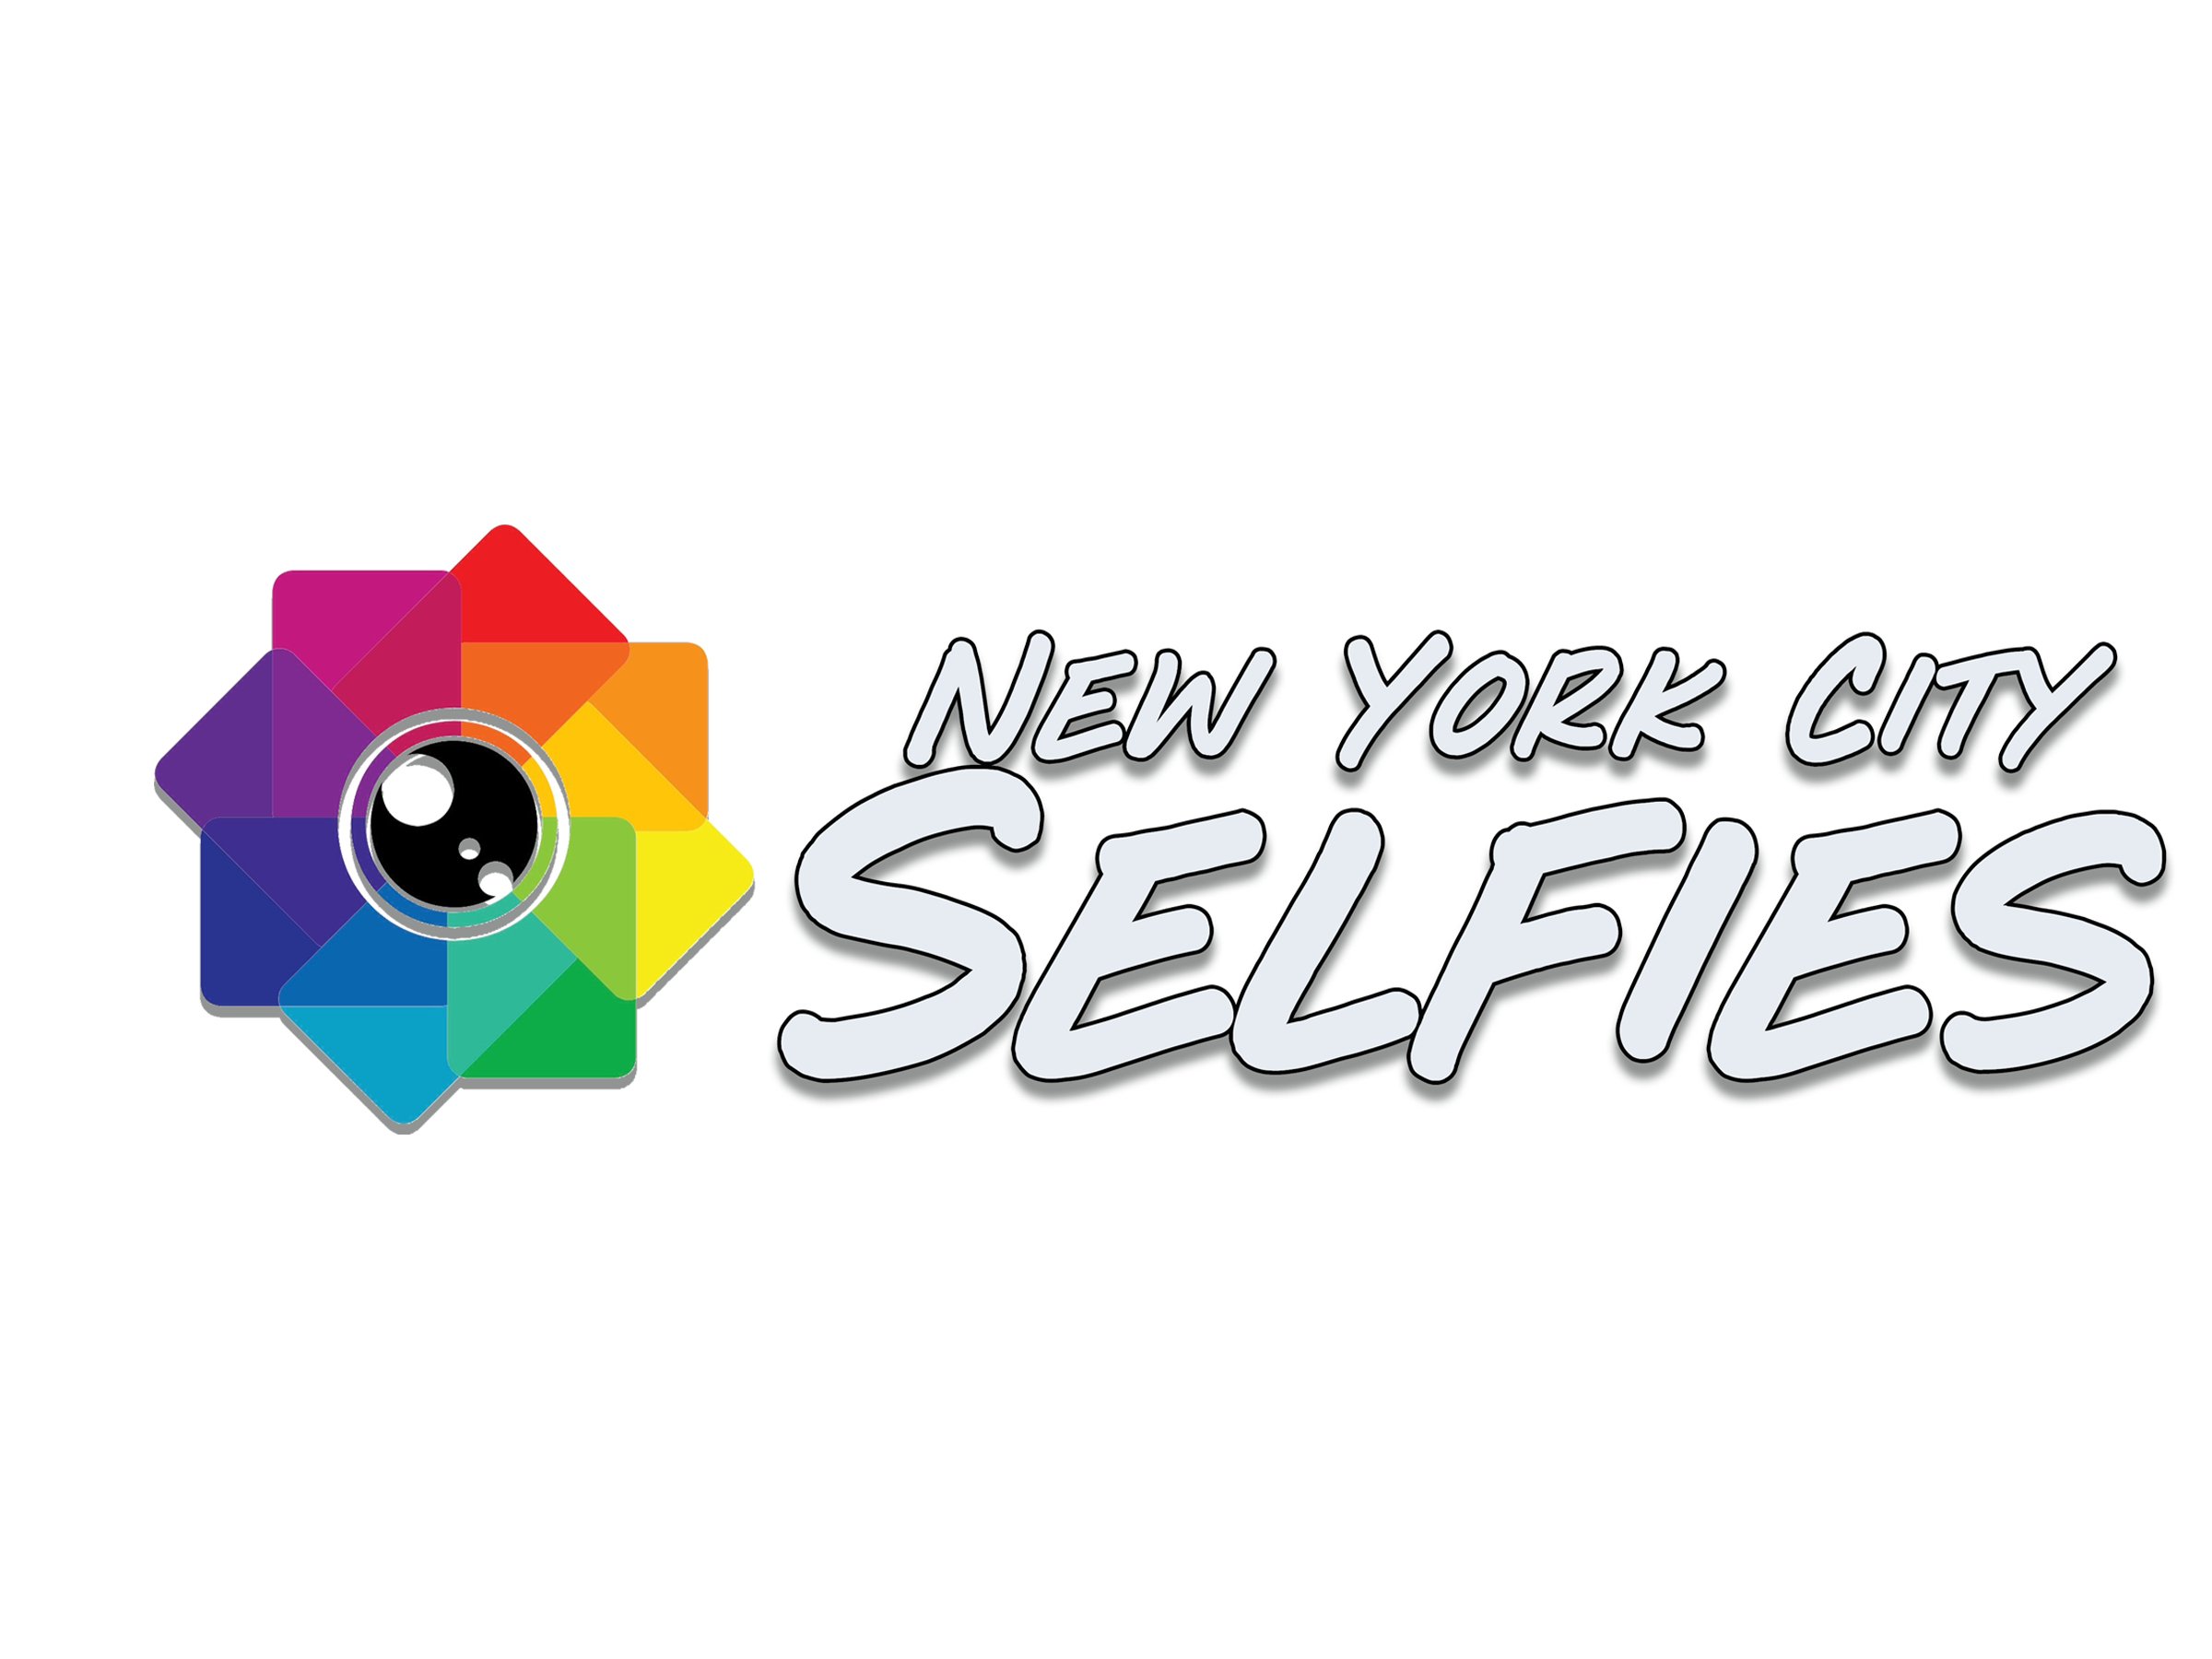 new york city selfies logo